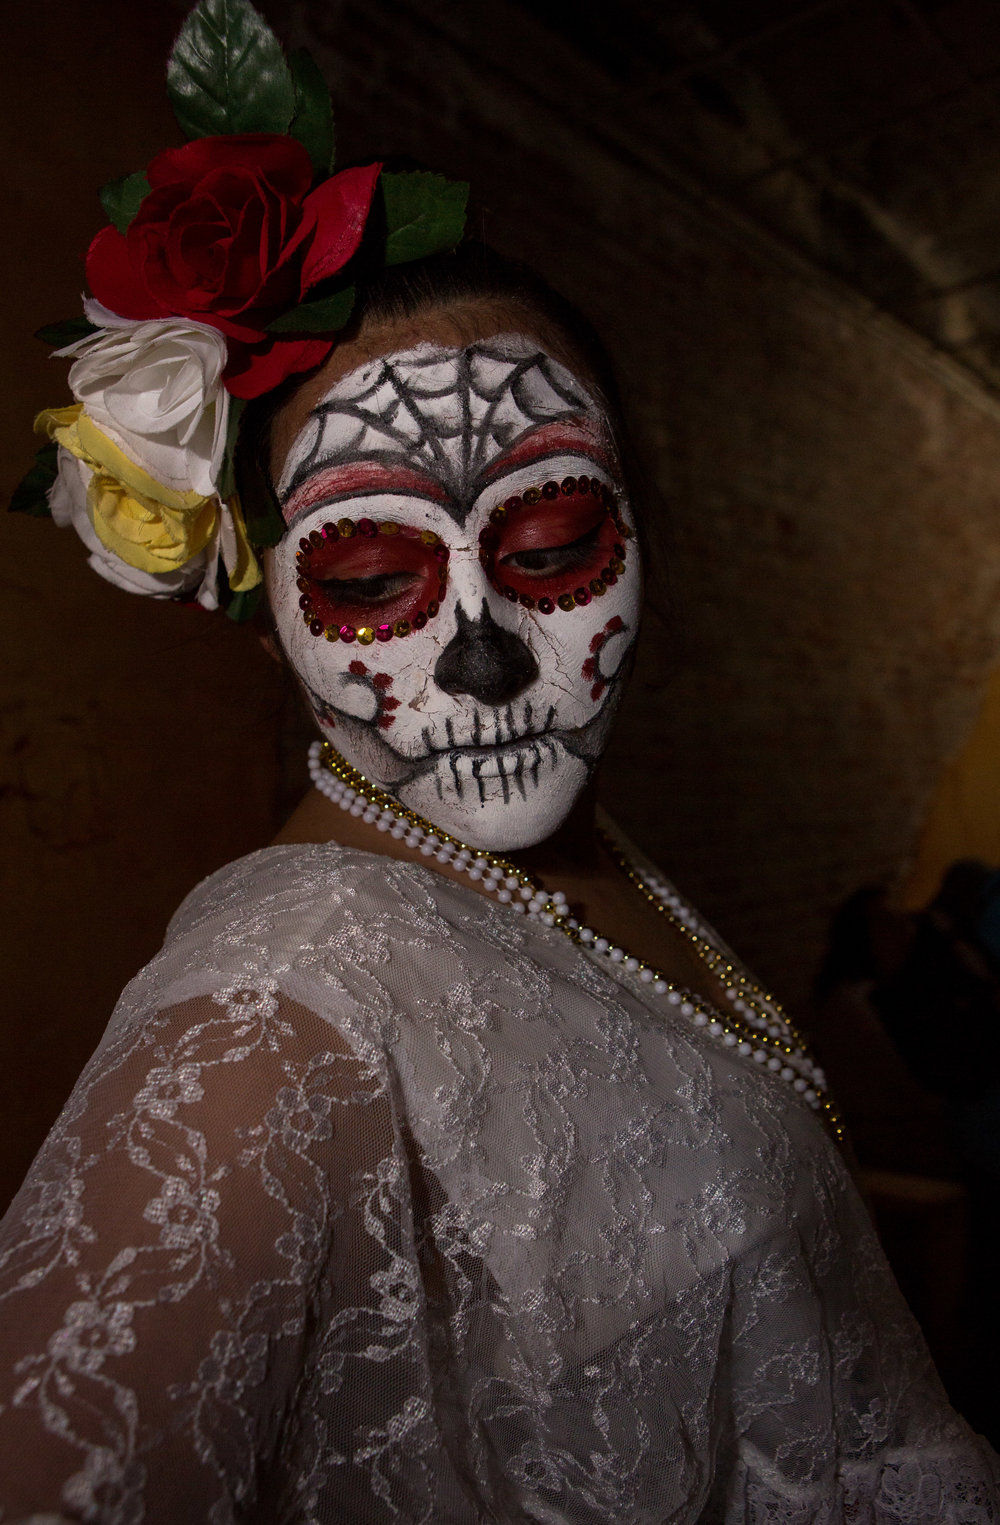 Cecillia Montoya of Toledo poses after having her make up done to perform with the Ballet Folklorico Imagenes Mexicanas during the Sofía Quintero Art and Cultural Center's 20th annual Day of the Dead celebration at on Broadway St. in Toledo on Saturday, Nov. 5, 2016.